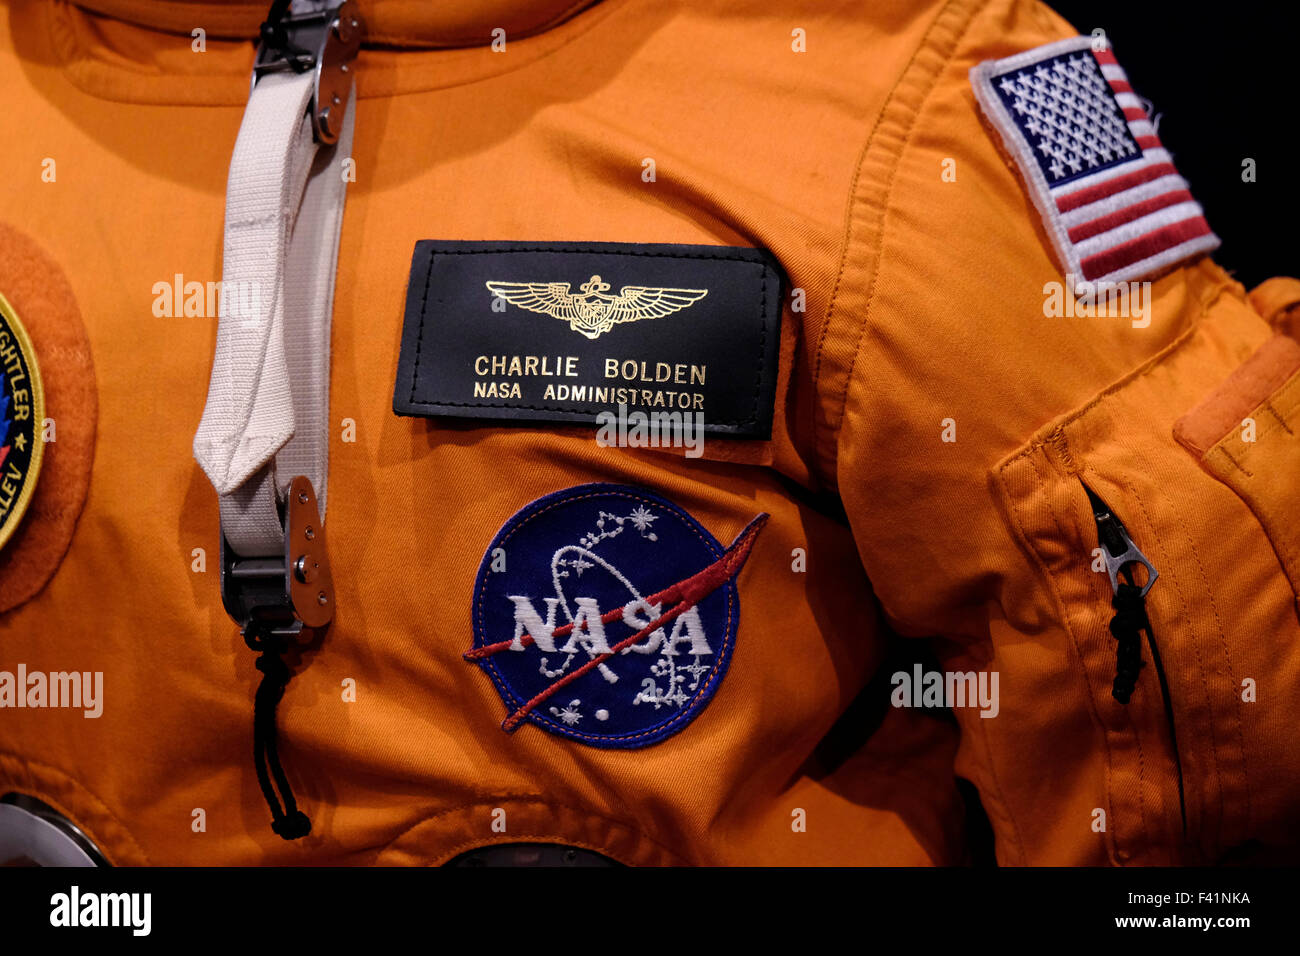 Astronaut spacesuit of Charlie Bolden the current Administrator of NASA and former NASA astronaut. - Stock Image